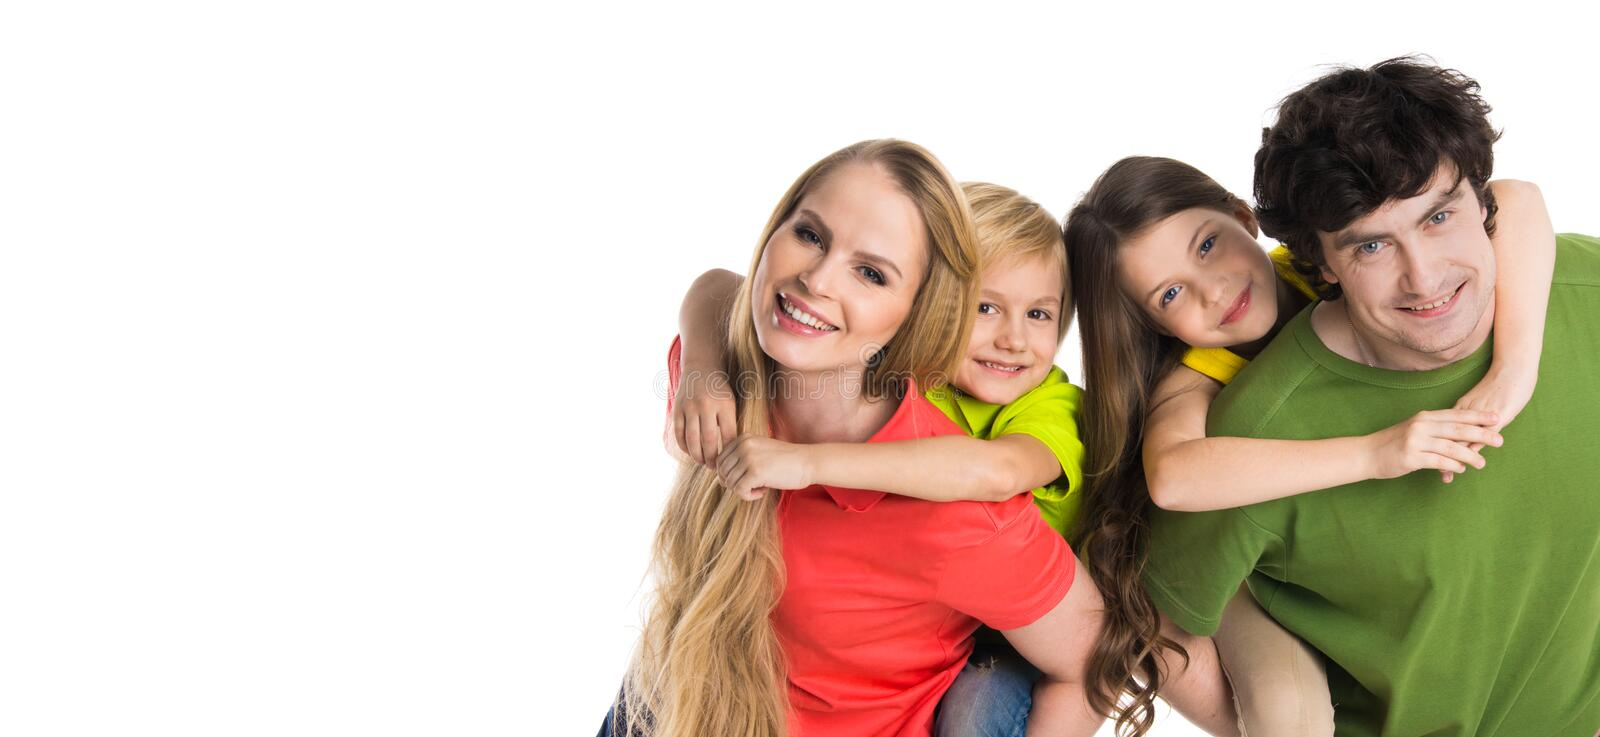 Parents giving piggyback ride to kids royalty free stock images